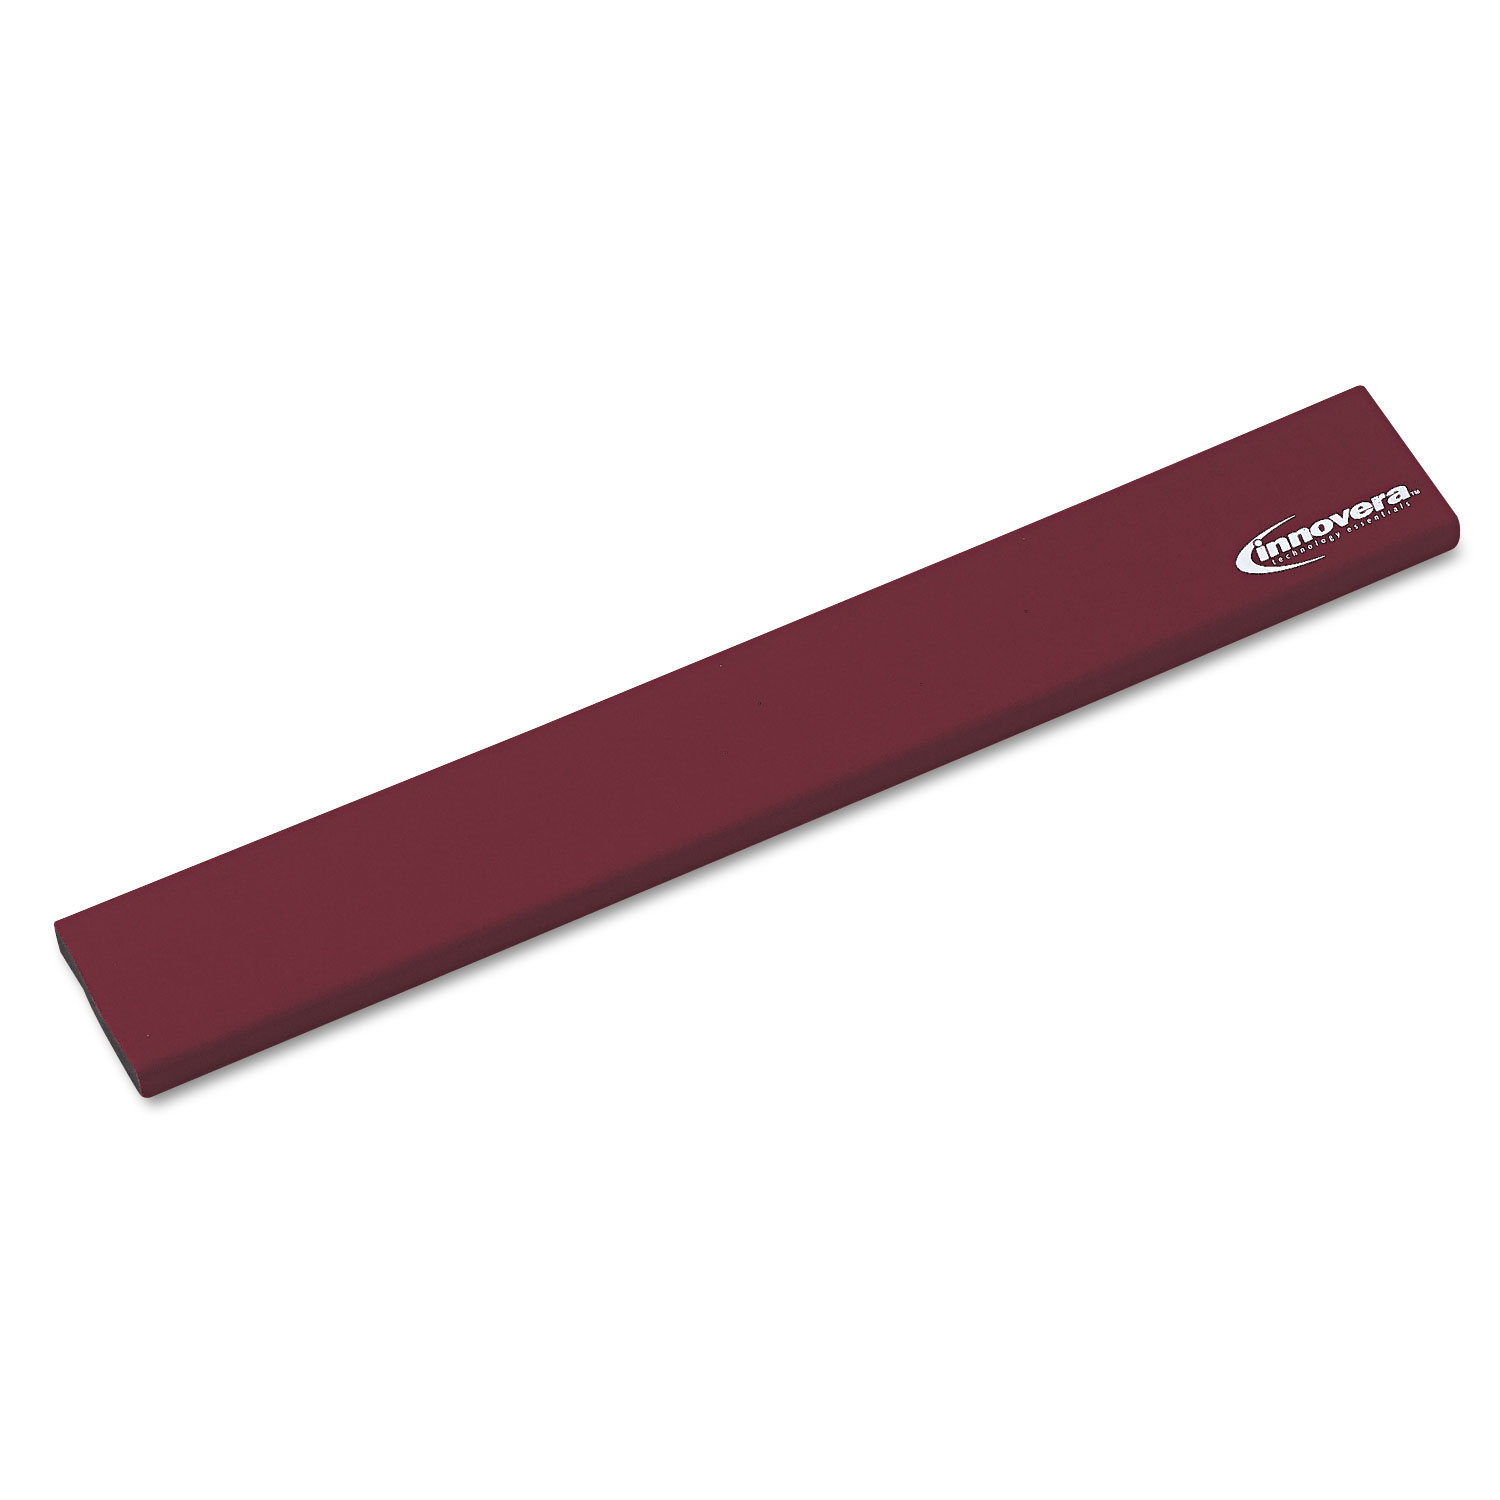 Latex-Free Keyboard Wrist Rest, Burgundy